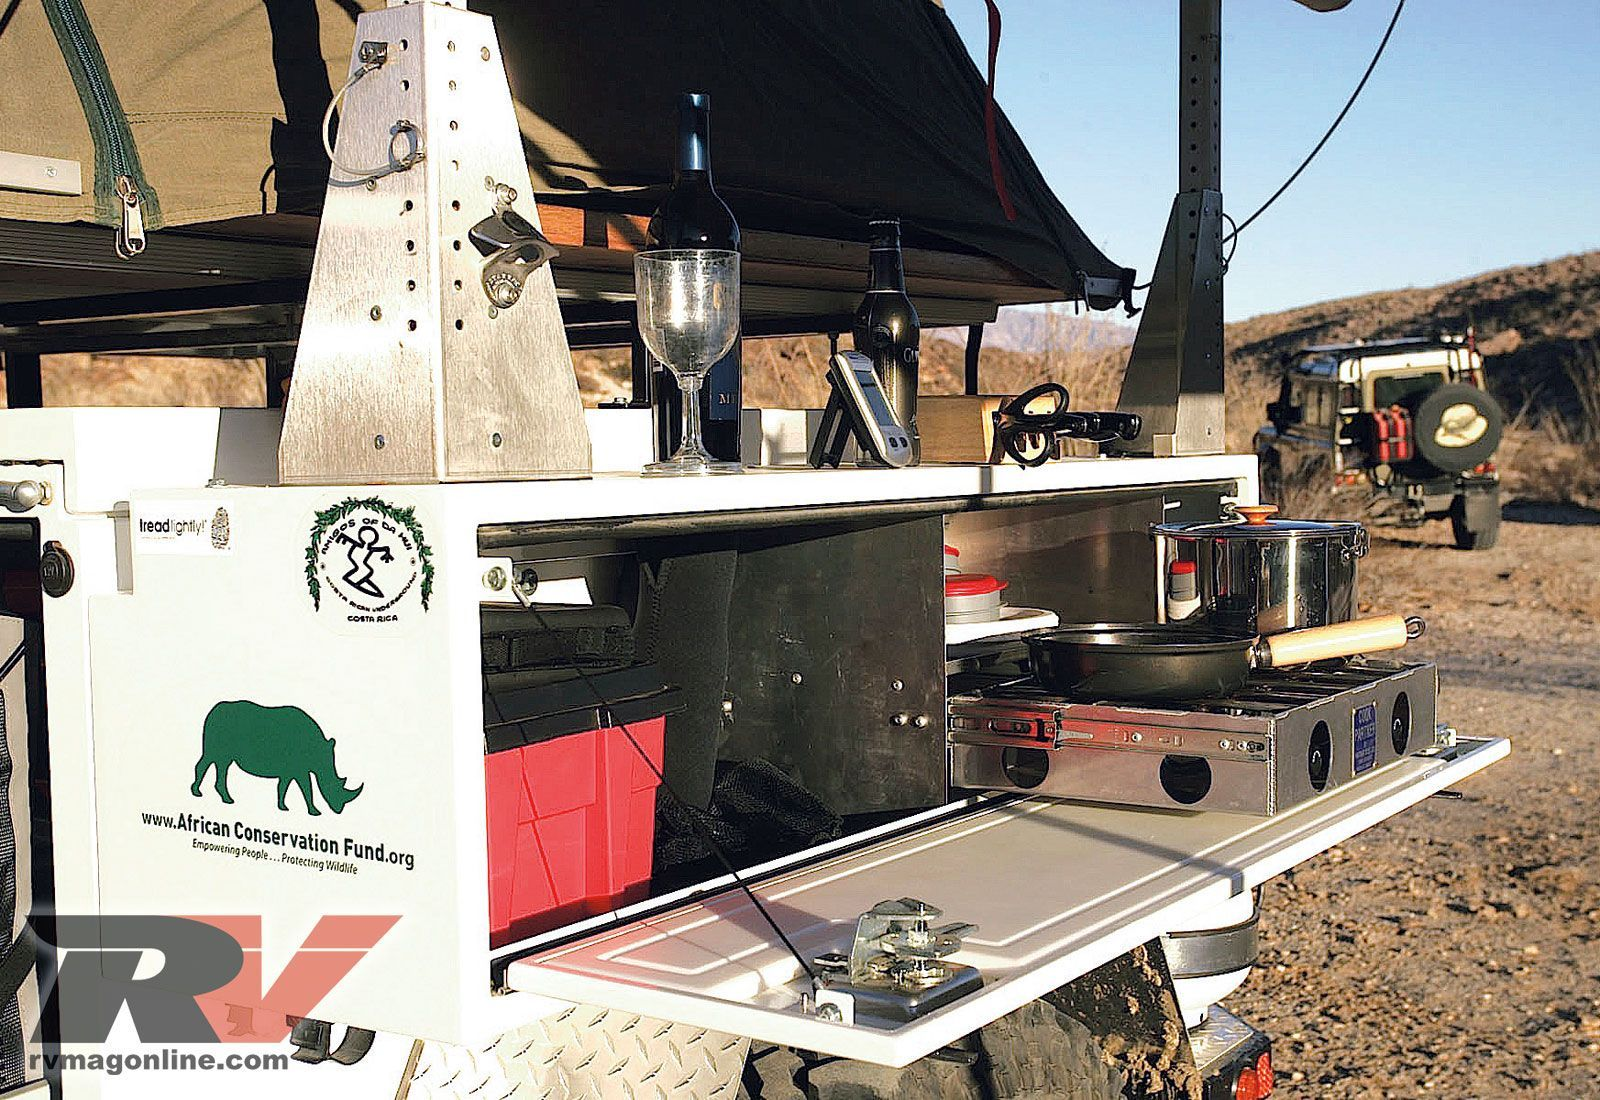 Tent Camper Trailers Adventure Trailers Horizon Outdoor Kitchen Entrancing Travel Trailer With Outdoor Kitchen Decorating Inspiration